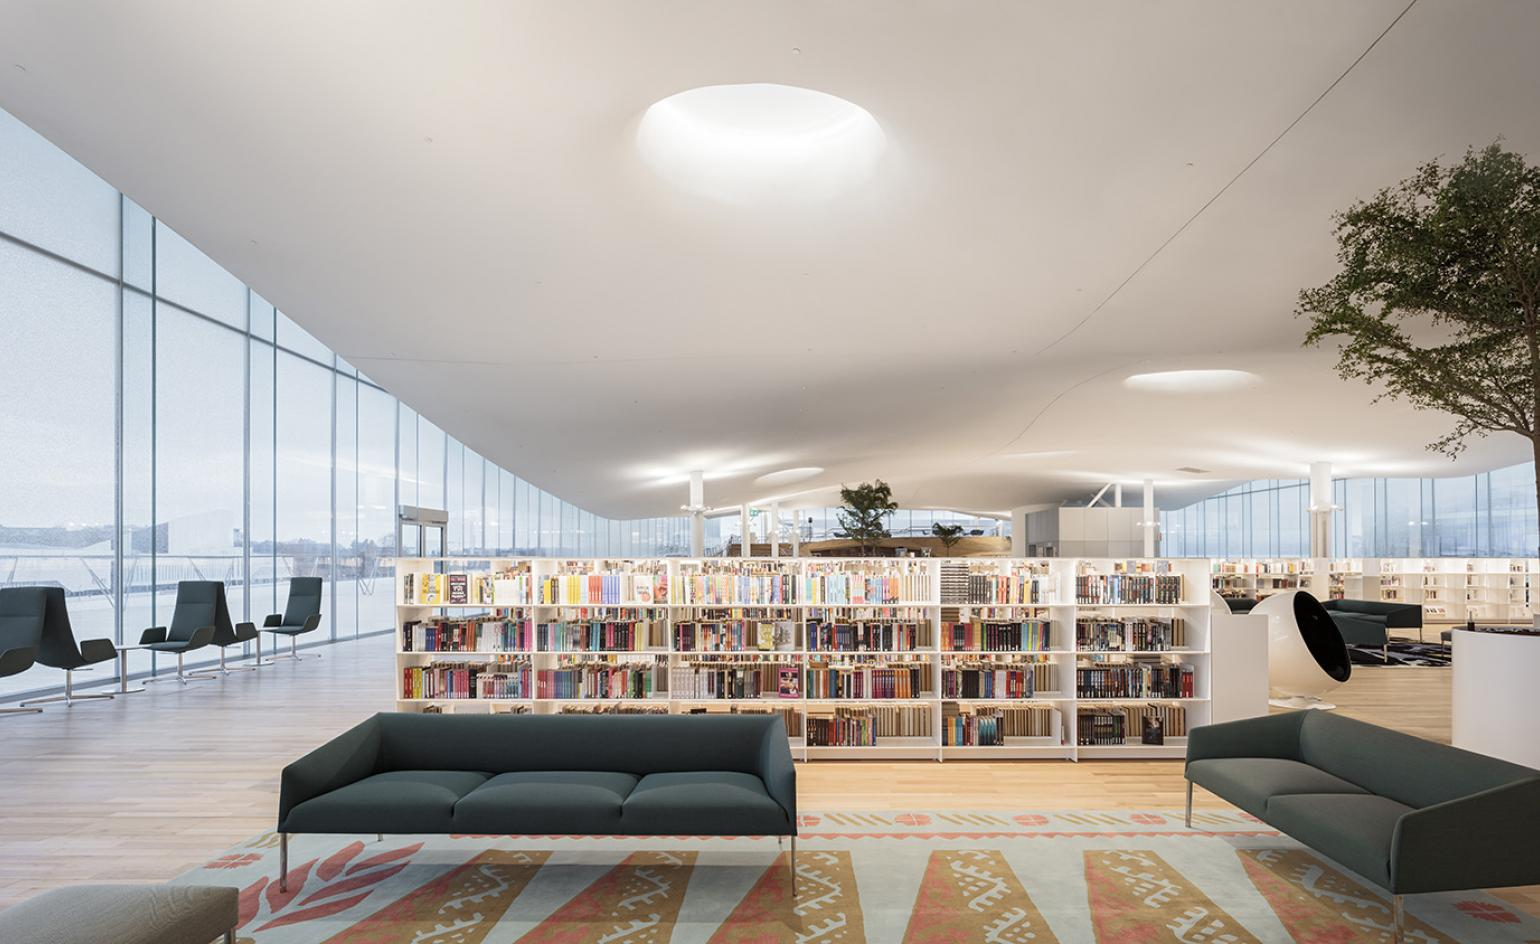 Helsinki opens a light-filled library as a national monument to education, sharing and books